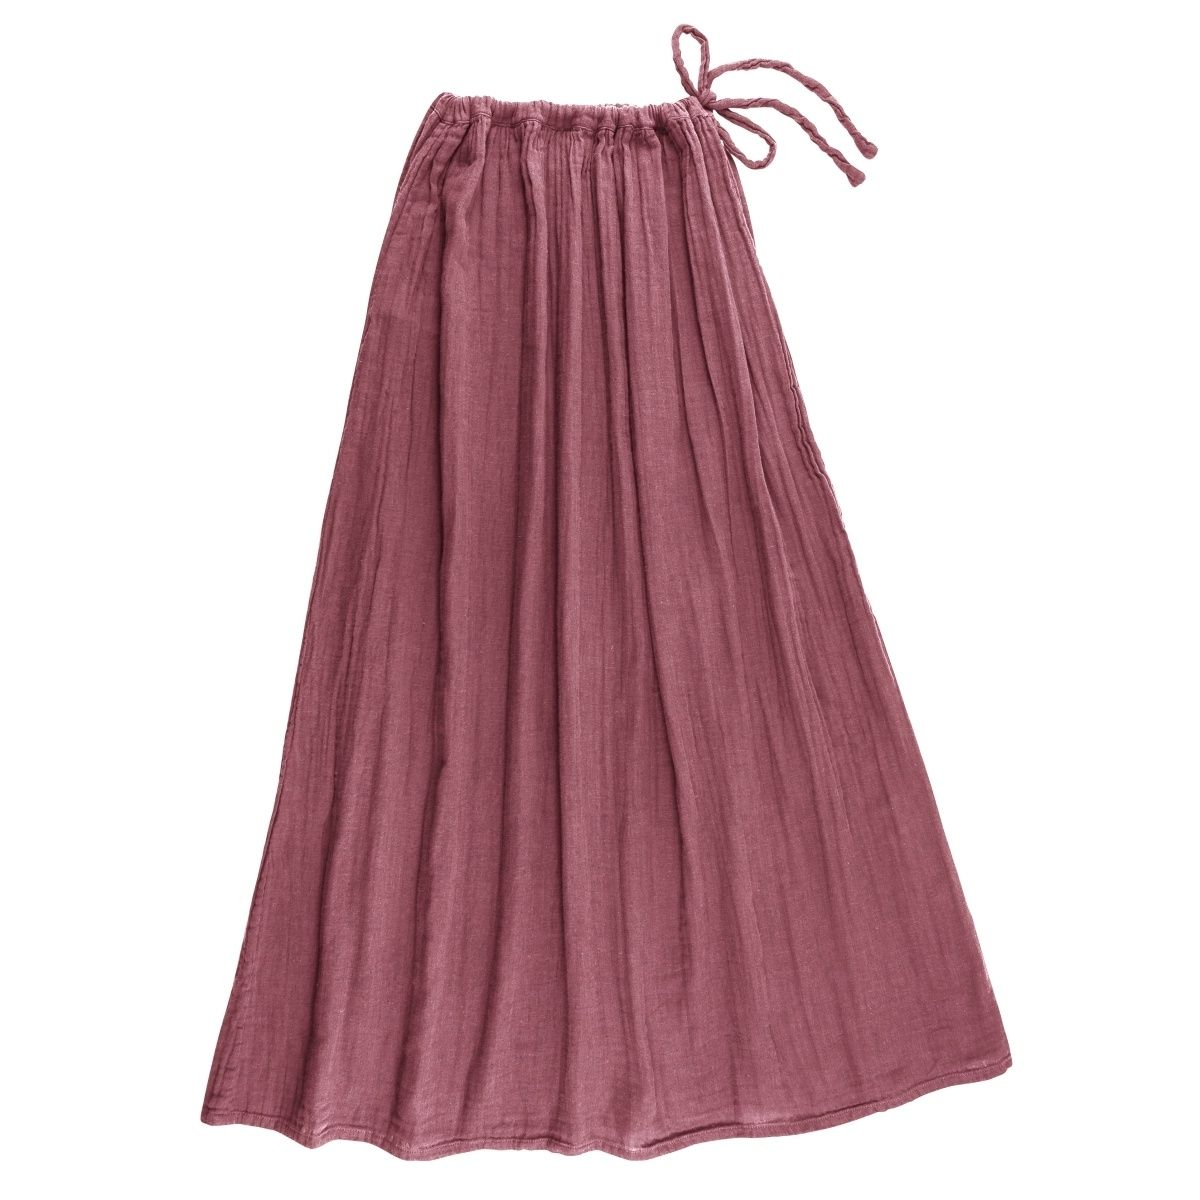 4f2a5f61cc Numero 74 | Skirt for mum Ava long baobab rose Size L/XL Color Baobab rose